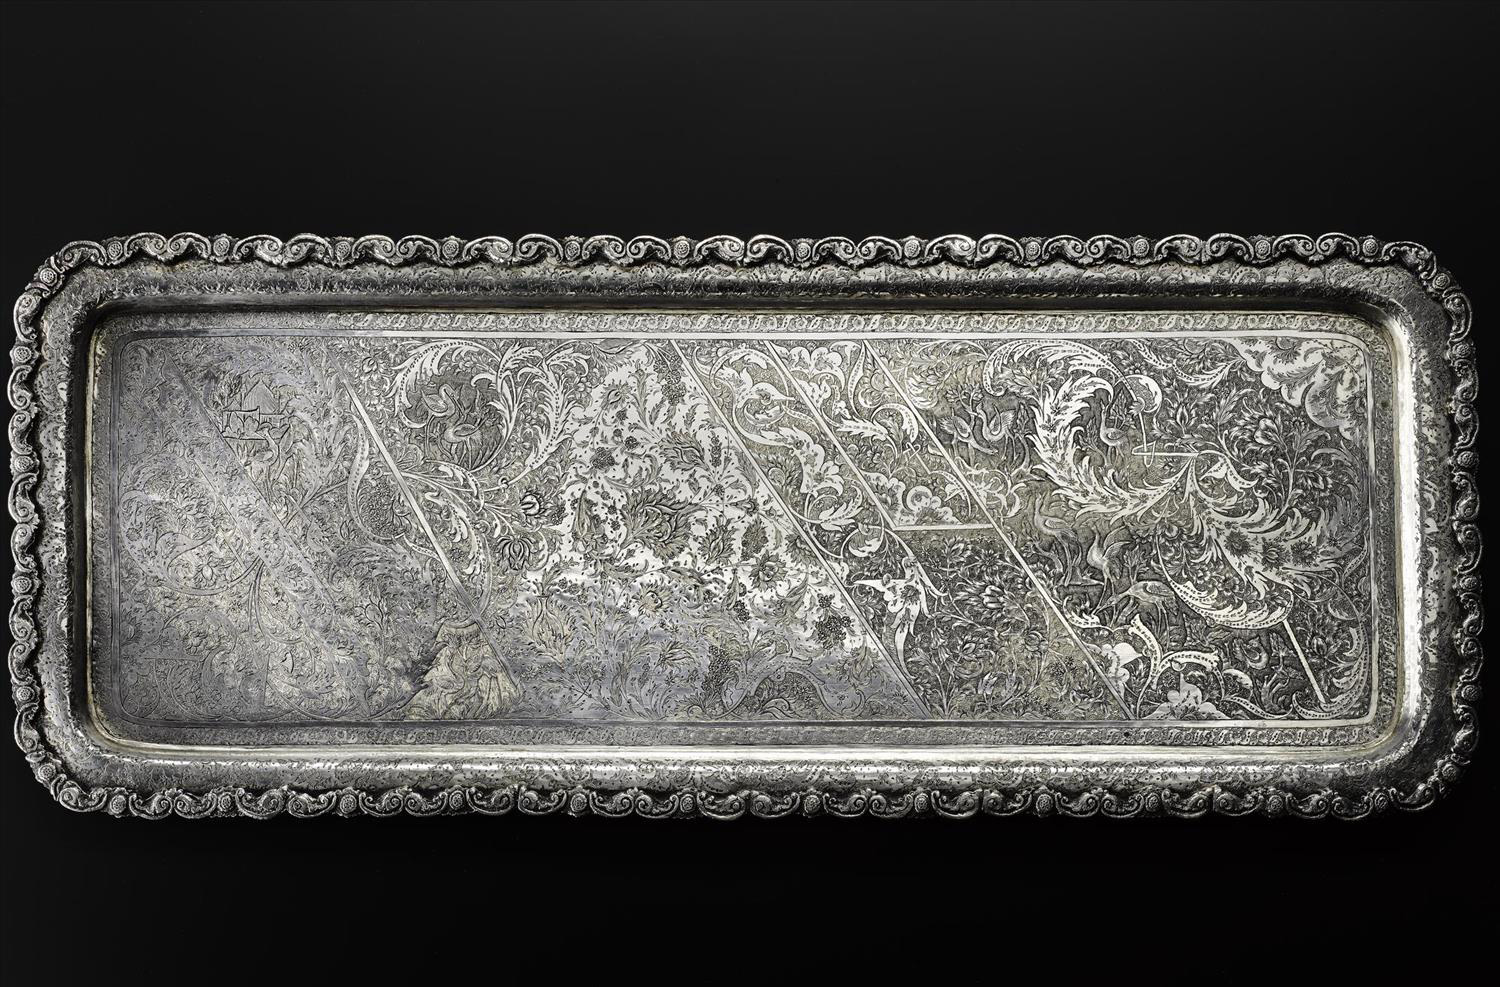 Rectangular tray of silver with an asymmetrical pattern depicting a landscape with trees and cranes overlaid with fine curved leaves and flowers, with an embossed edge, hallmarked on the reverse, Iran, Isfahan, 1920s-1940s, acc. no V.2015.64